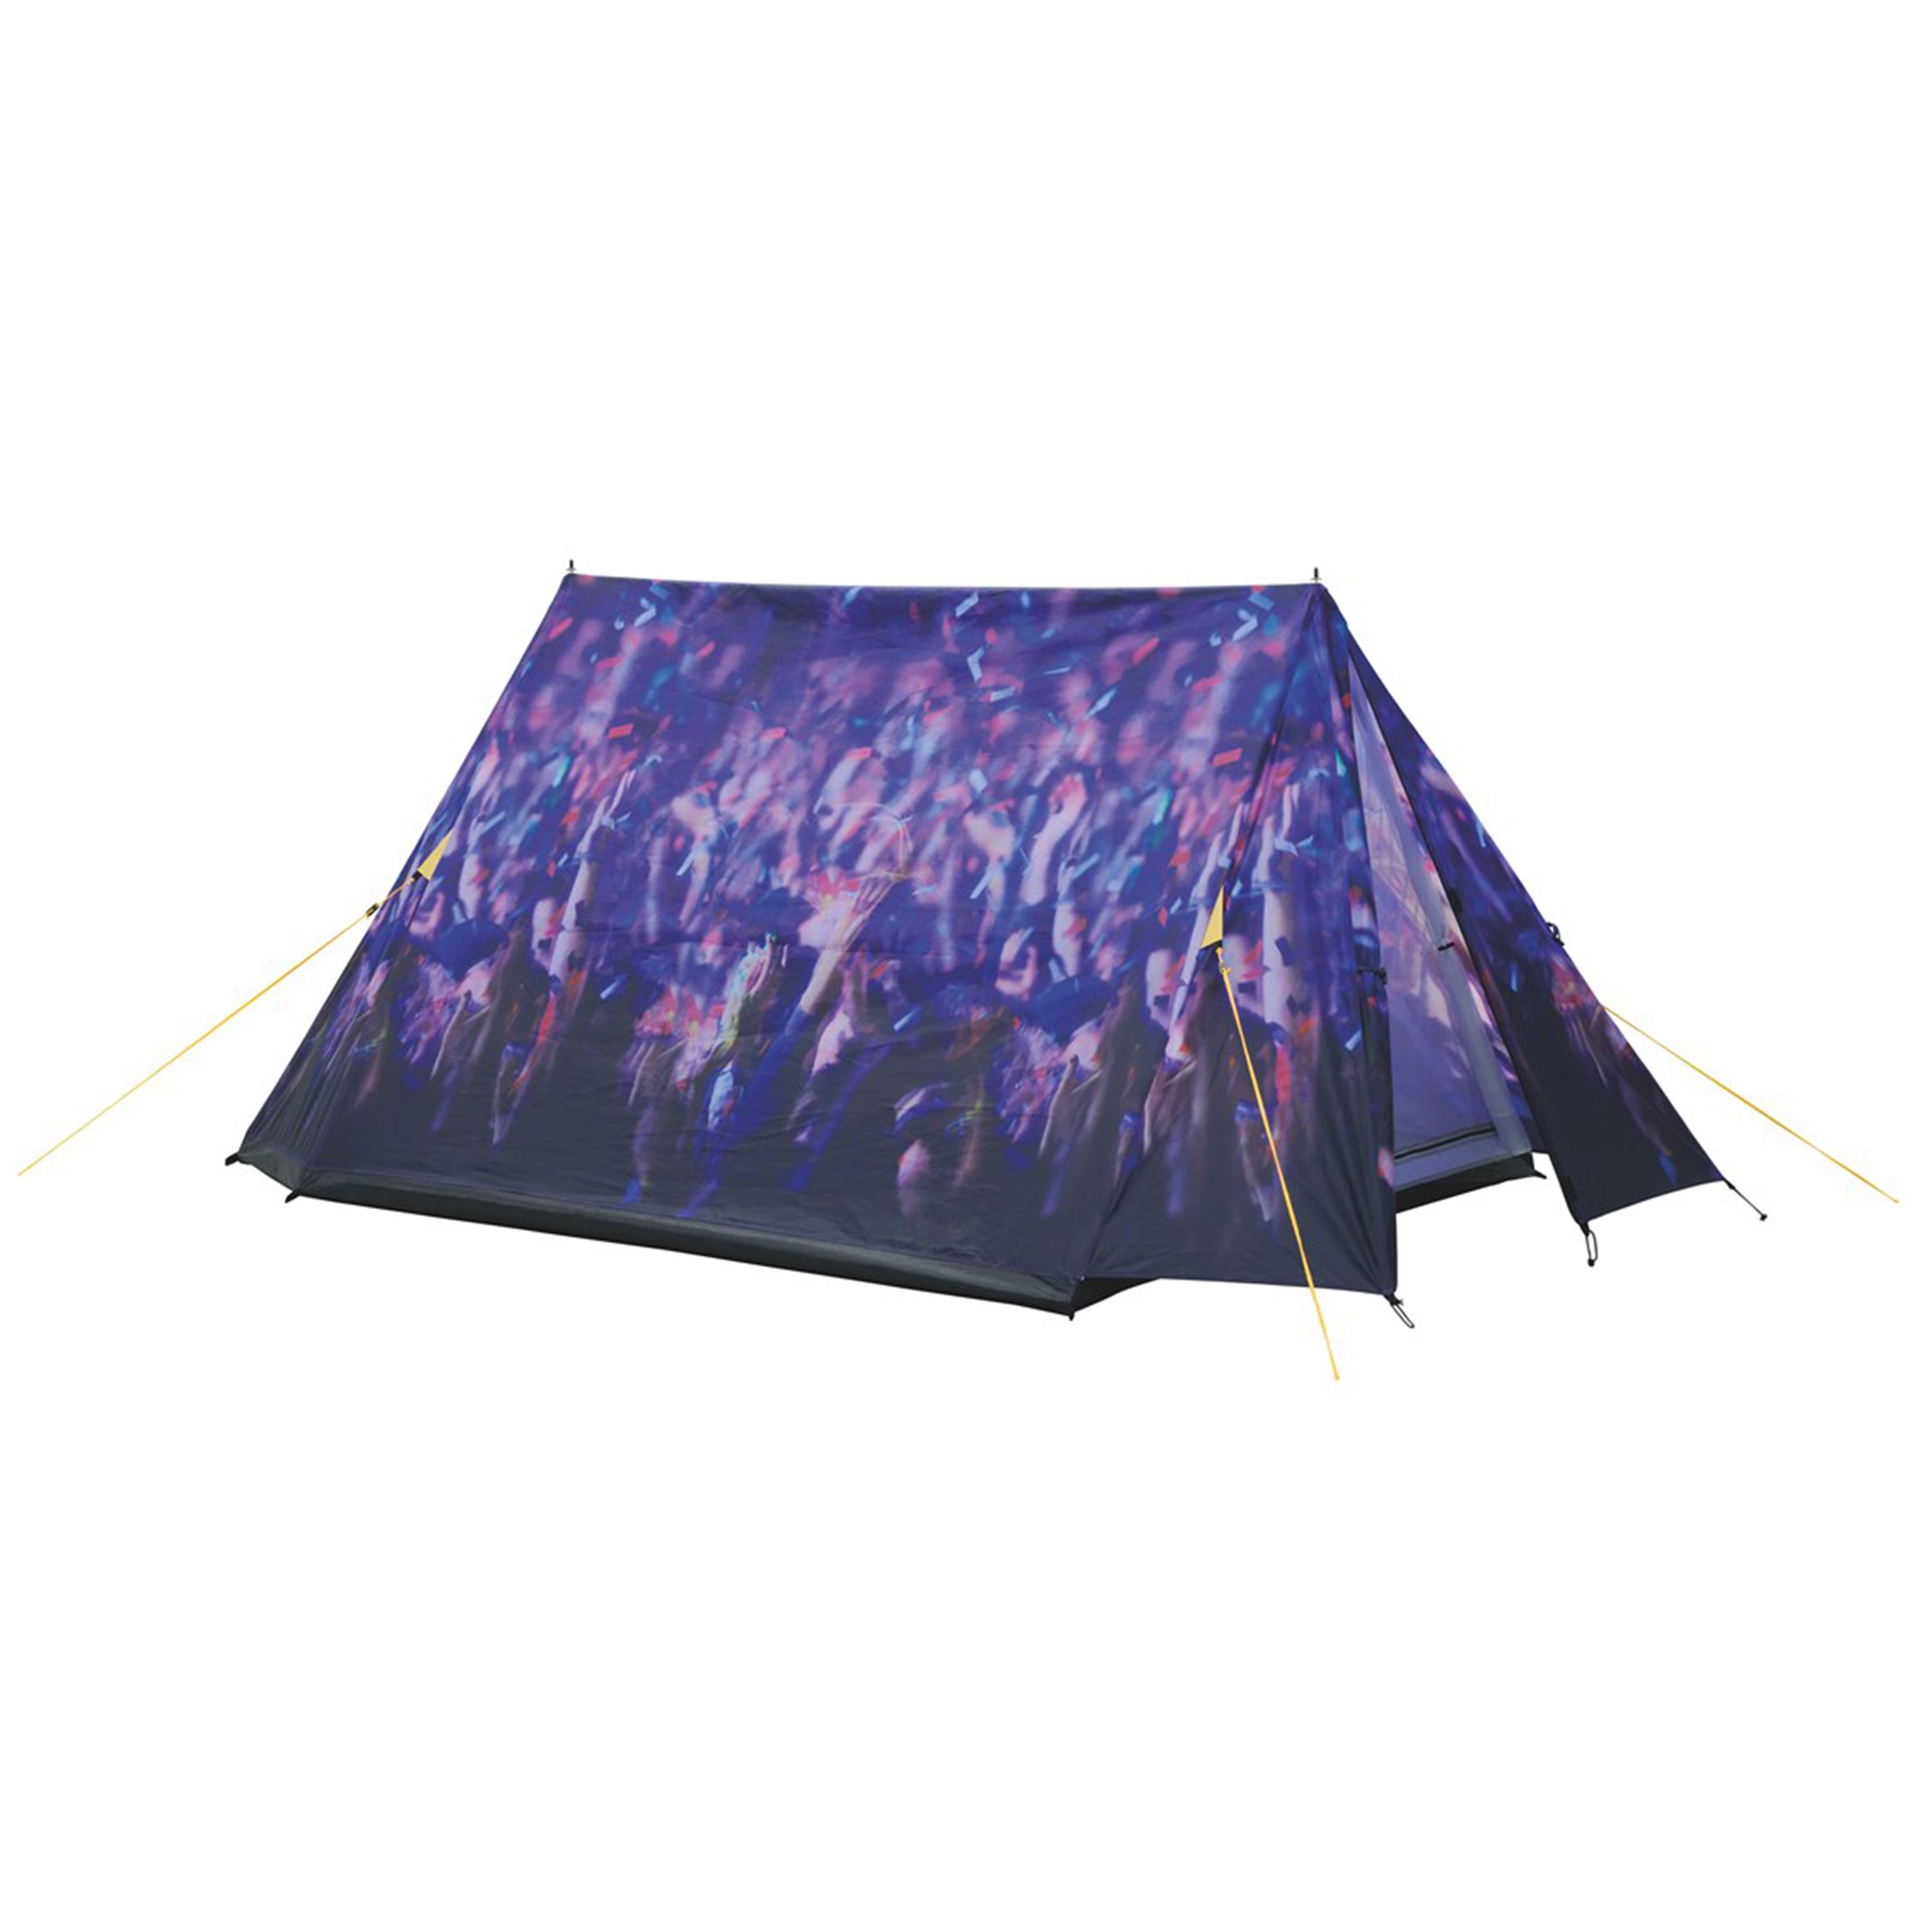 EASY CAMP Carnival People Tent